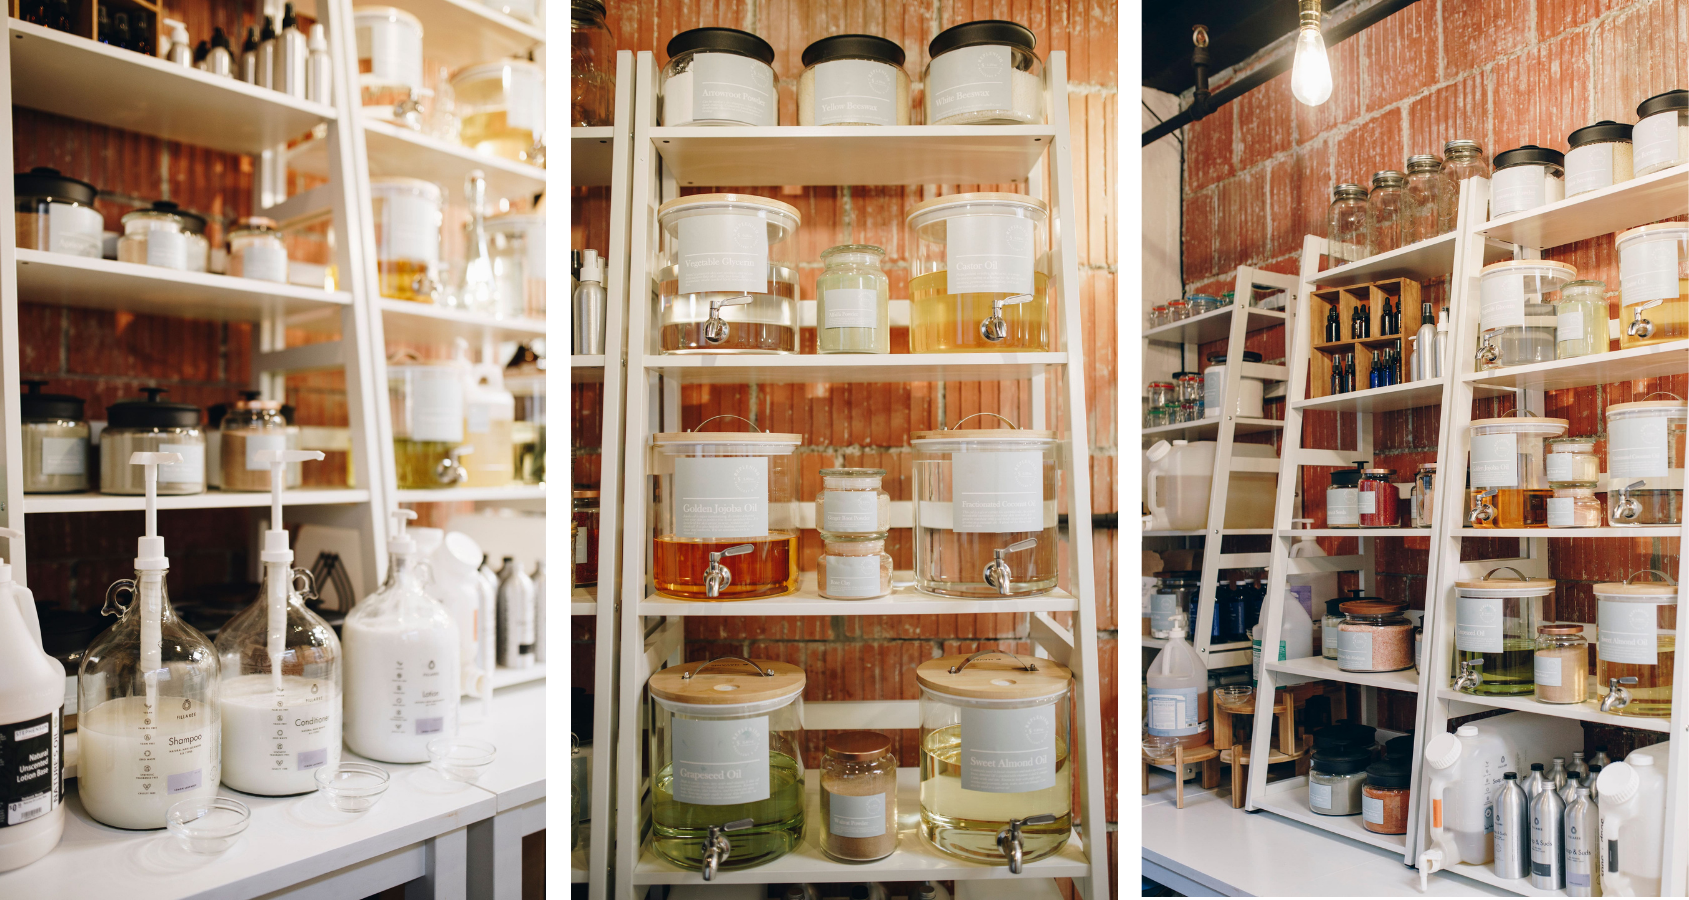 Refillable items at Reno eco-friendly shop and refillery